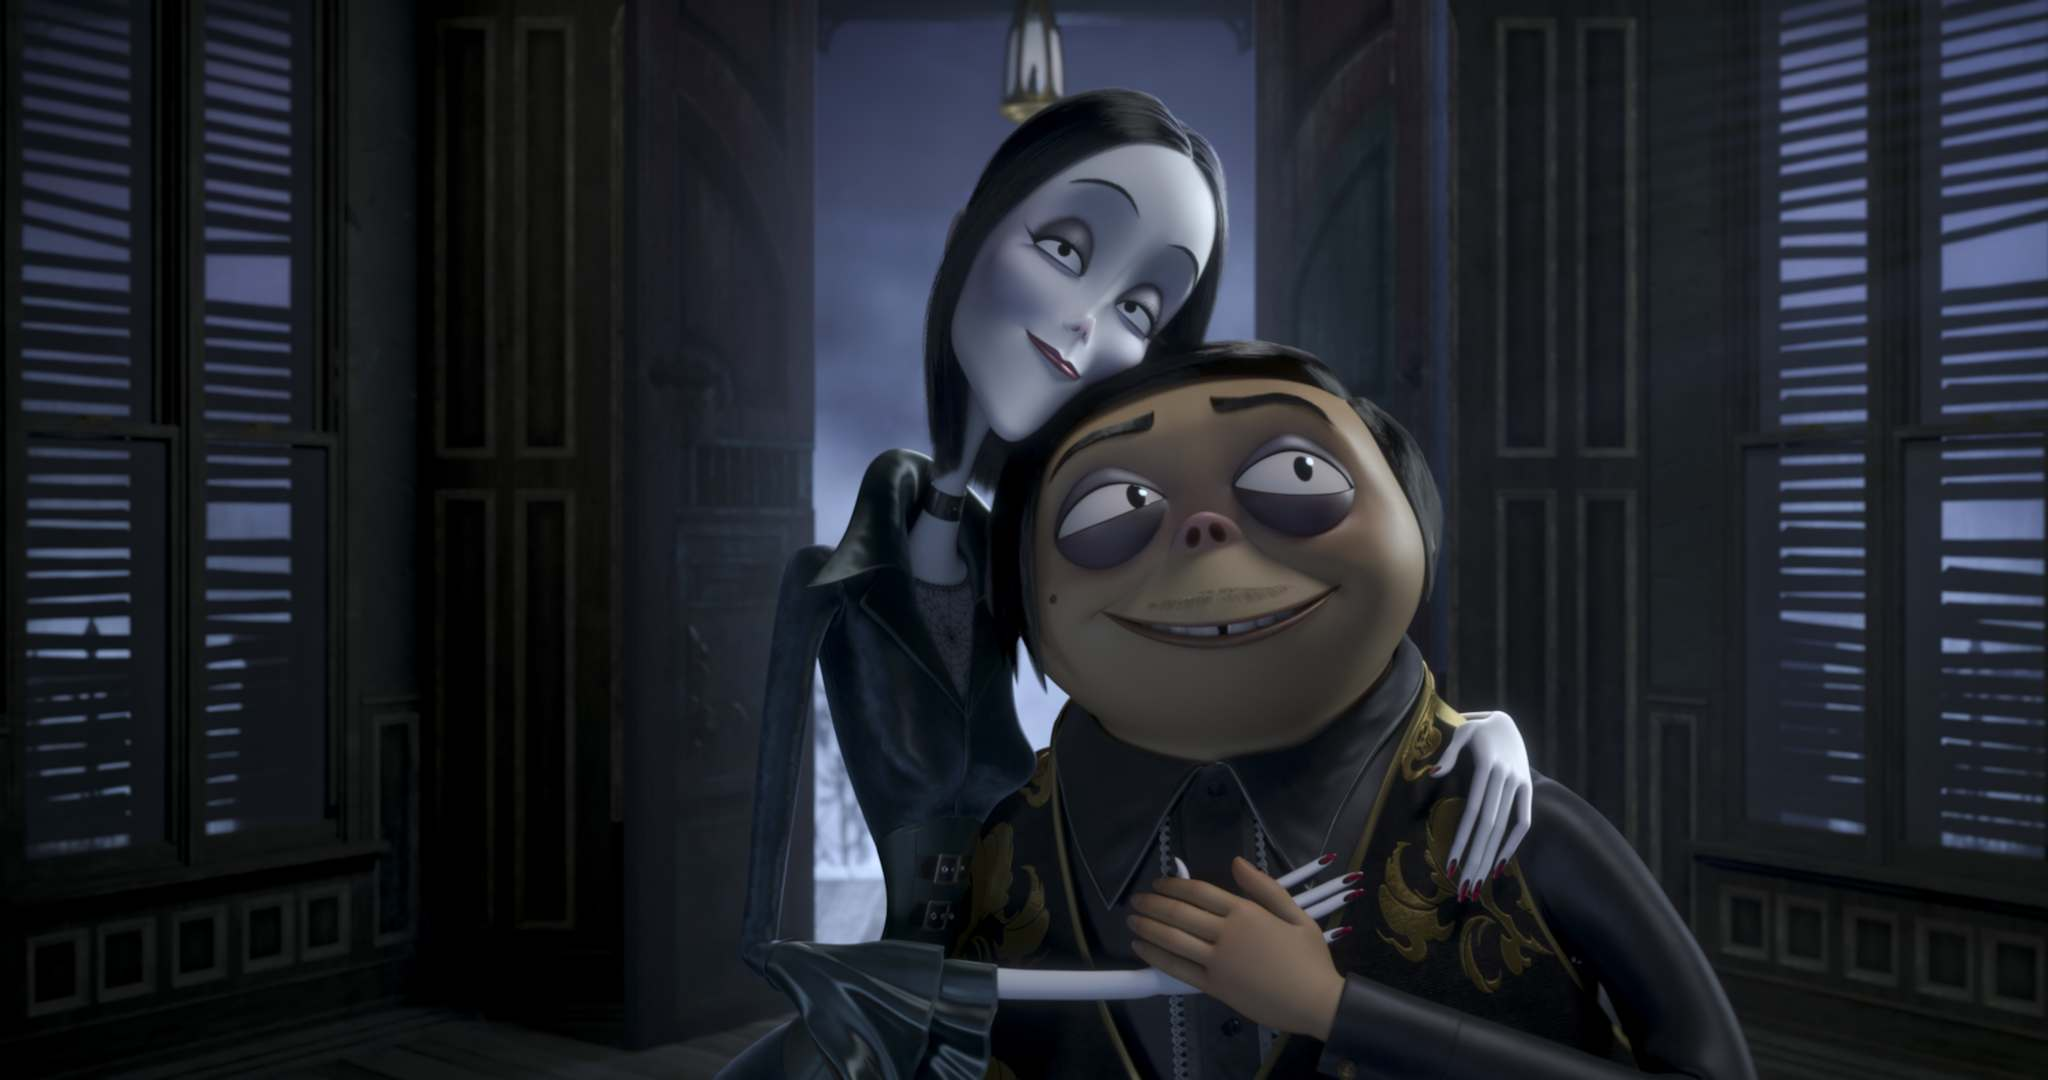 Metro-Goldwyn-Mayer Pictures Inc.</p><p>Charlize Theron is the voice of Morticia Addams (left) and Oscar Isaac voices Gomez Addams in the animated adaptation of The Addams Family.</p>